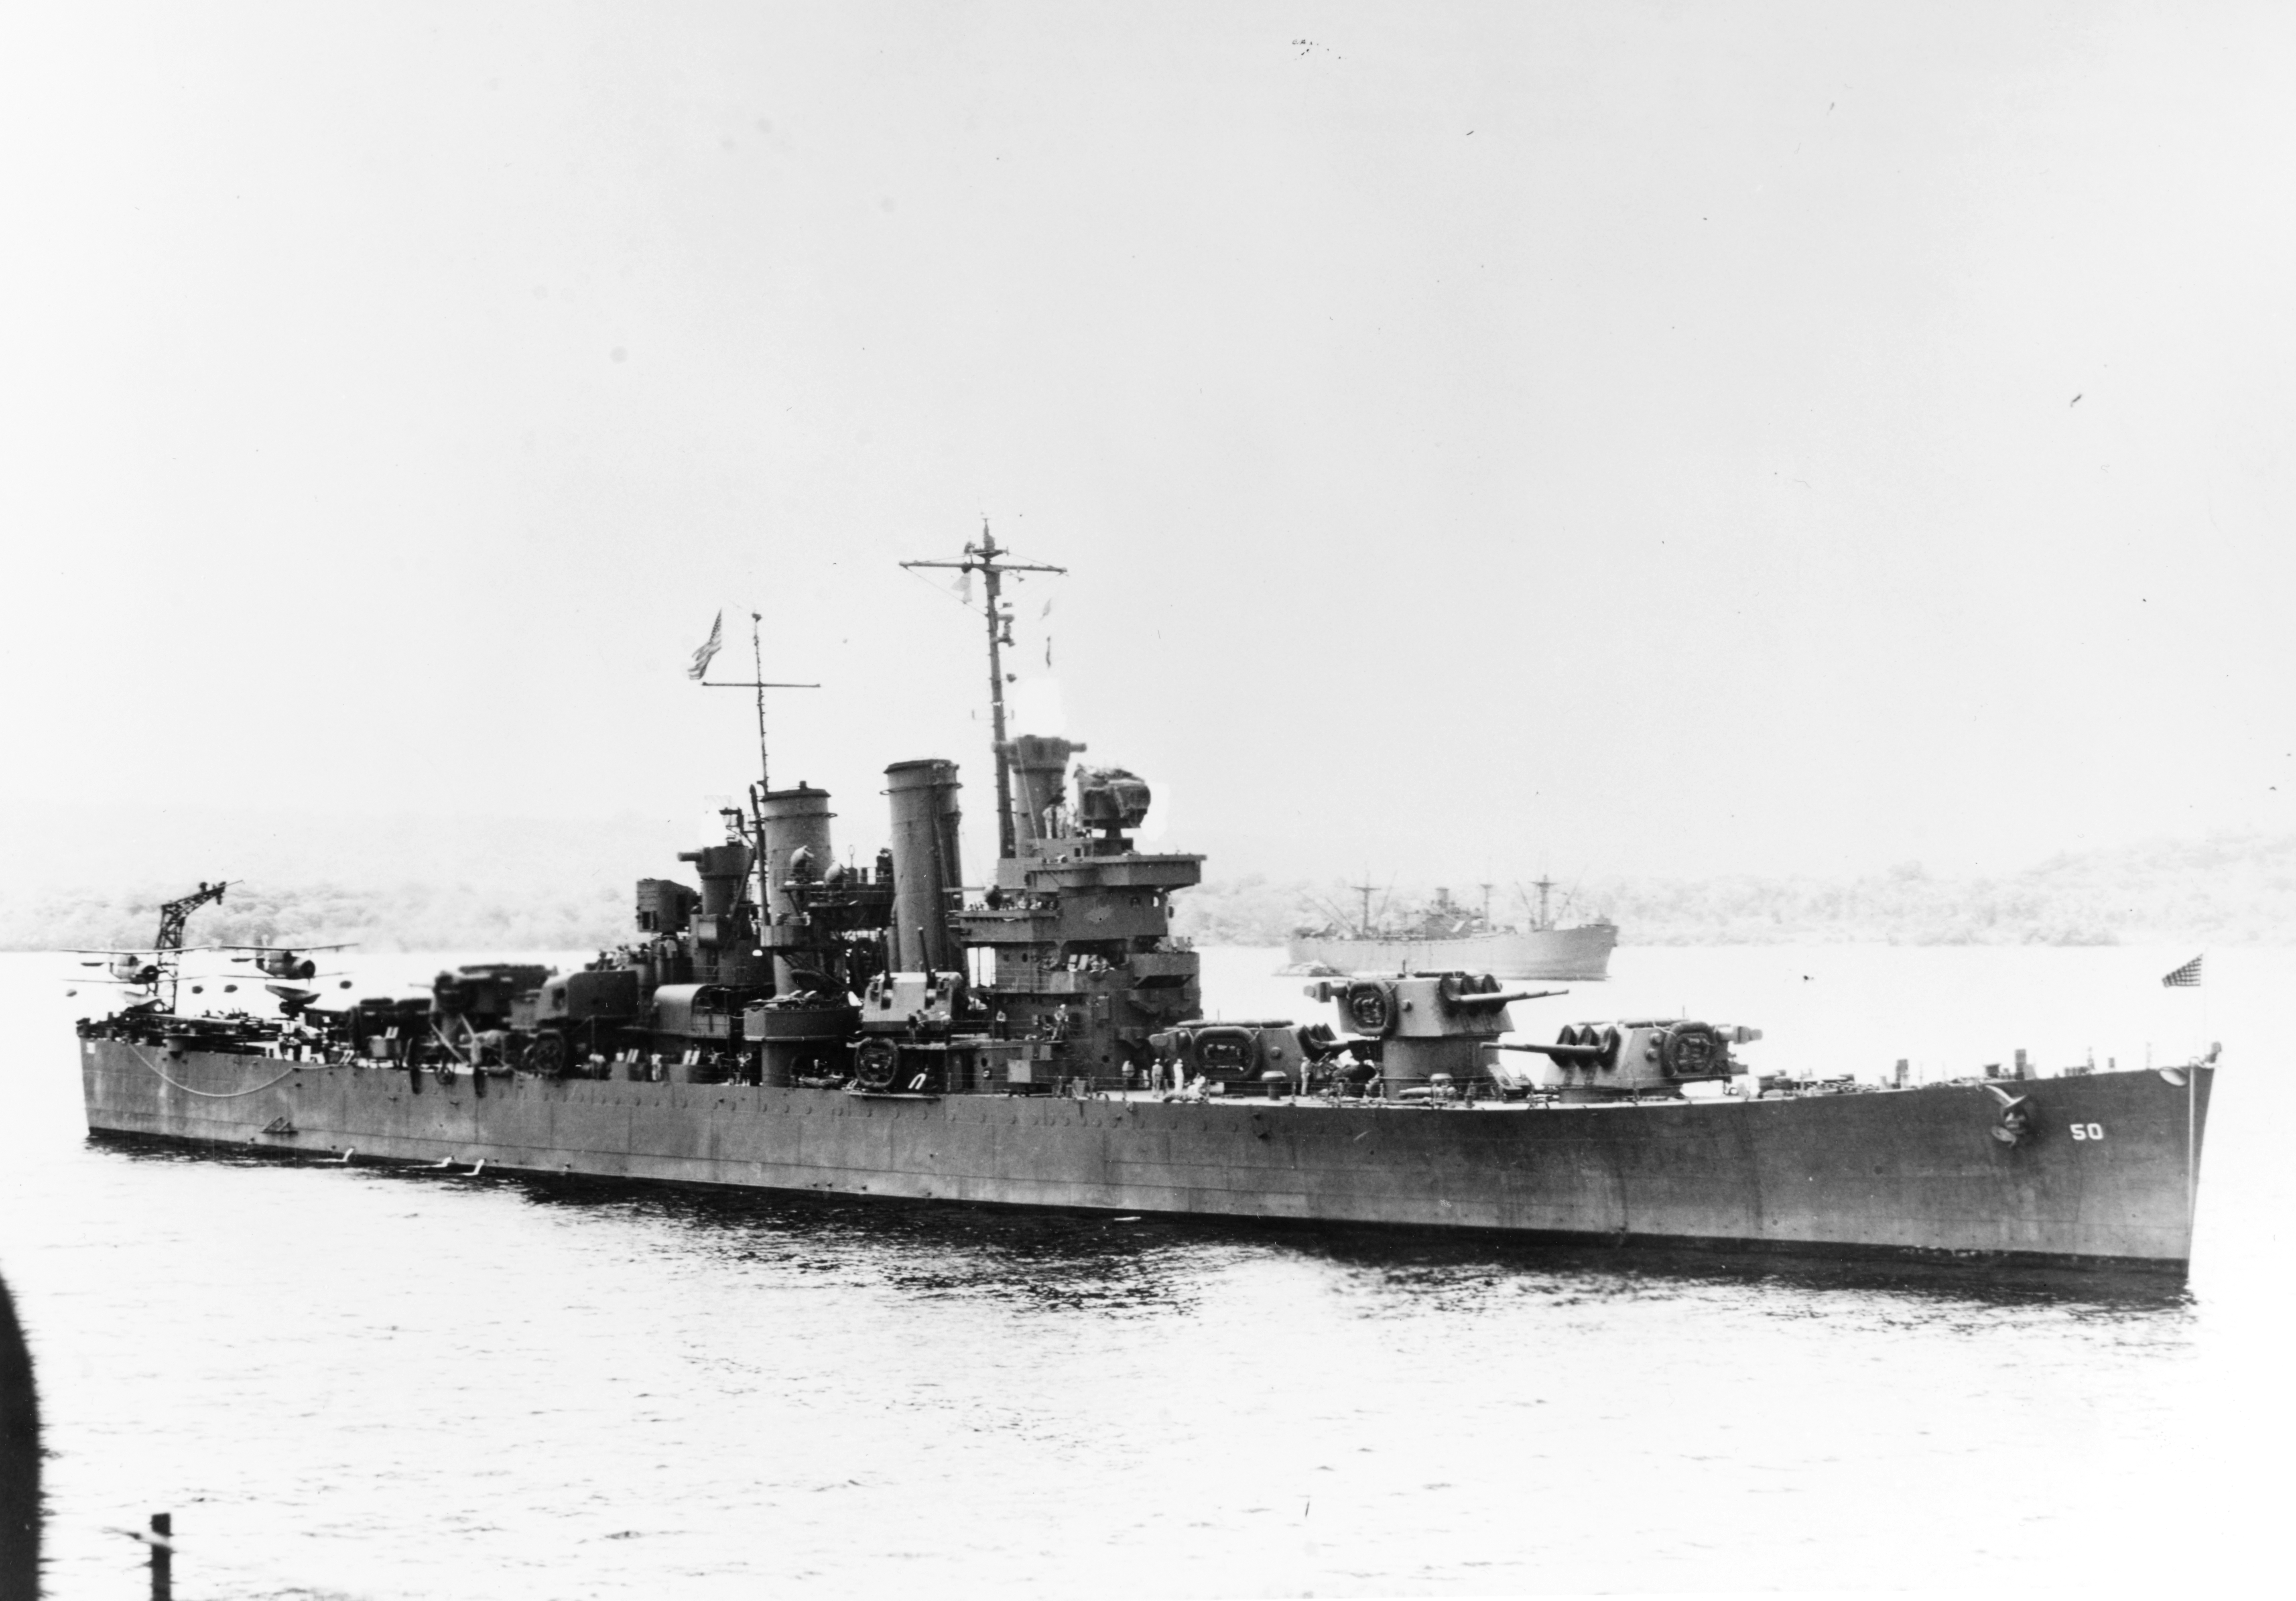 USS_Helena_%28CL-50%29_at_a_South_Pacific_base%2C_circa_in_1943_%28NH_95814%29.jpg